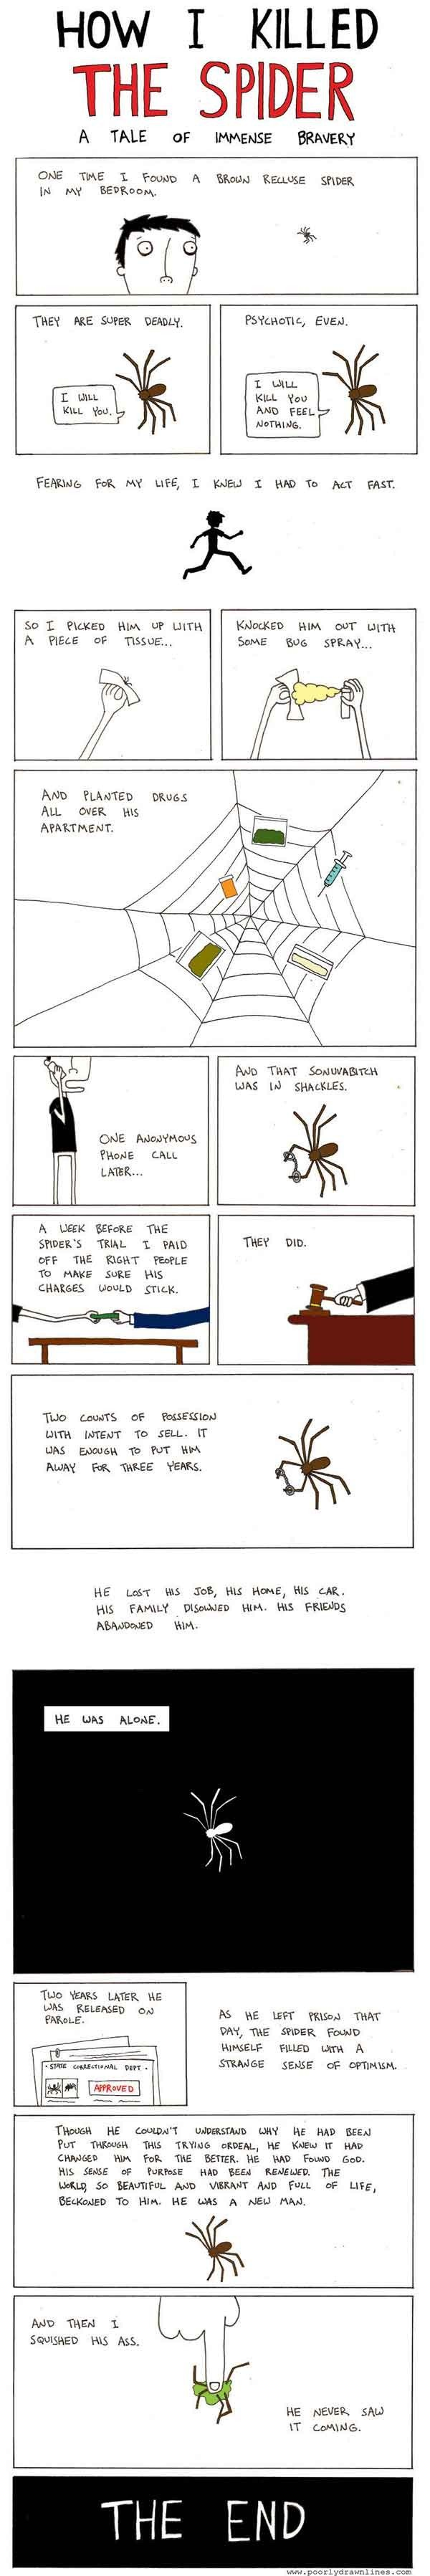 A Tale Of Immense Bravery. . HOW I KILLED THE SPIDER A TALE OF IMMENSE BRAVELY one nae 1 Fauna A Mara,: amuse S?\ DEK srjc, t Femme wk Nu' MFG, L wen 1 are To A